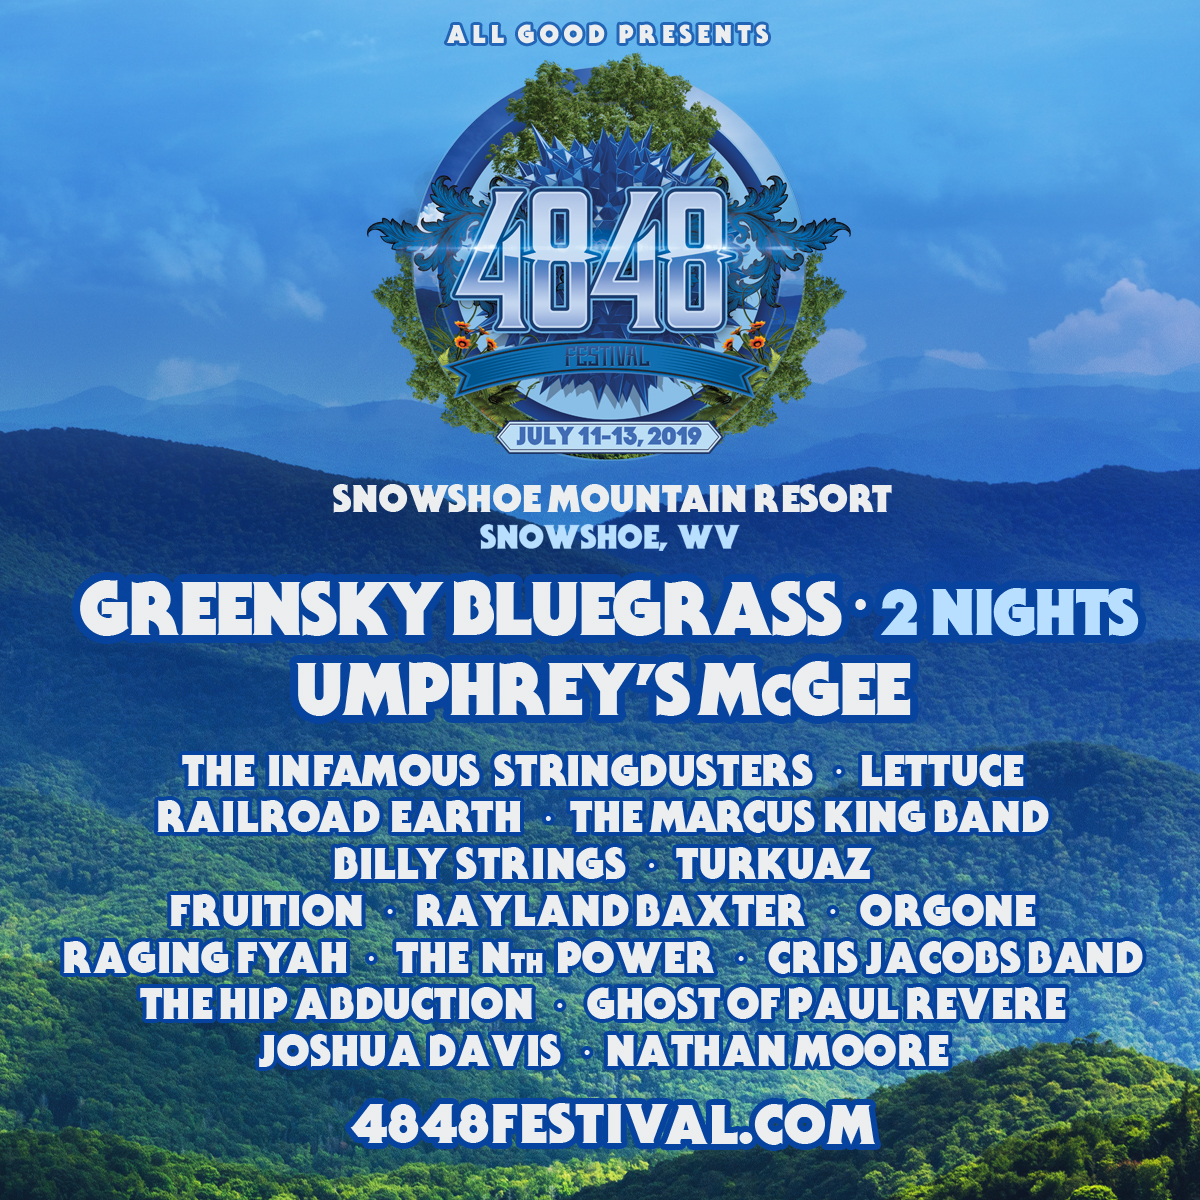 All Good Presents the Inaugural 4848 Festival at Snowshoe Mountain July 11 – 13